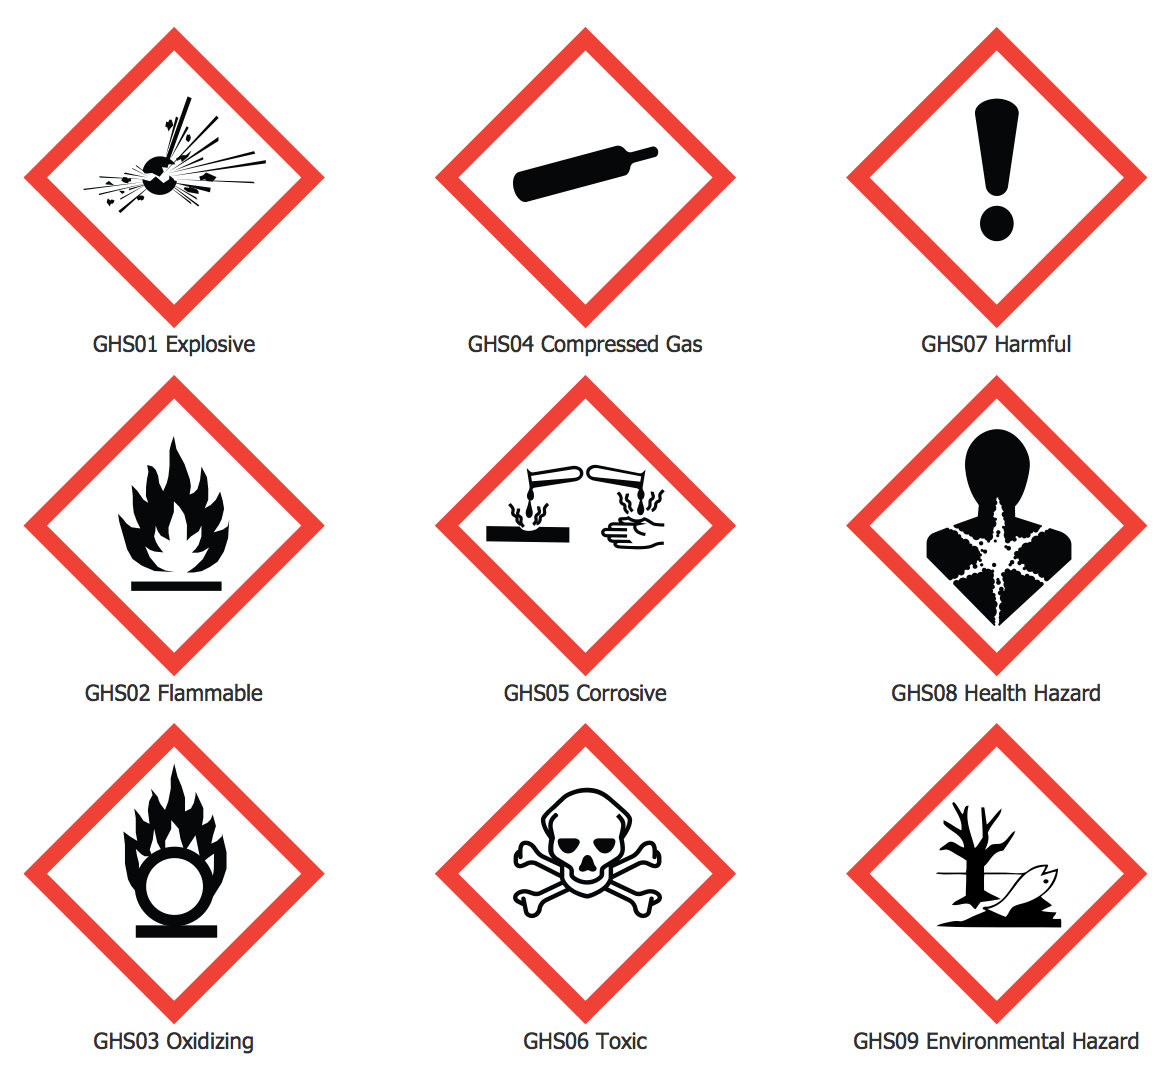 Design Elements — GHS Hazard Pictograms